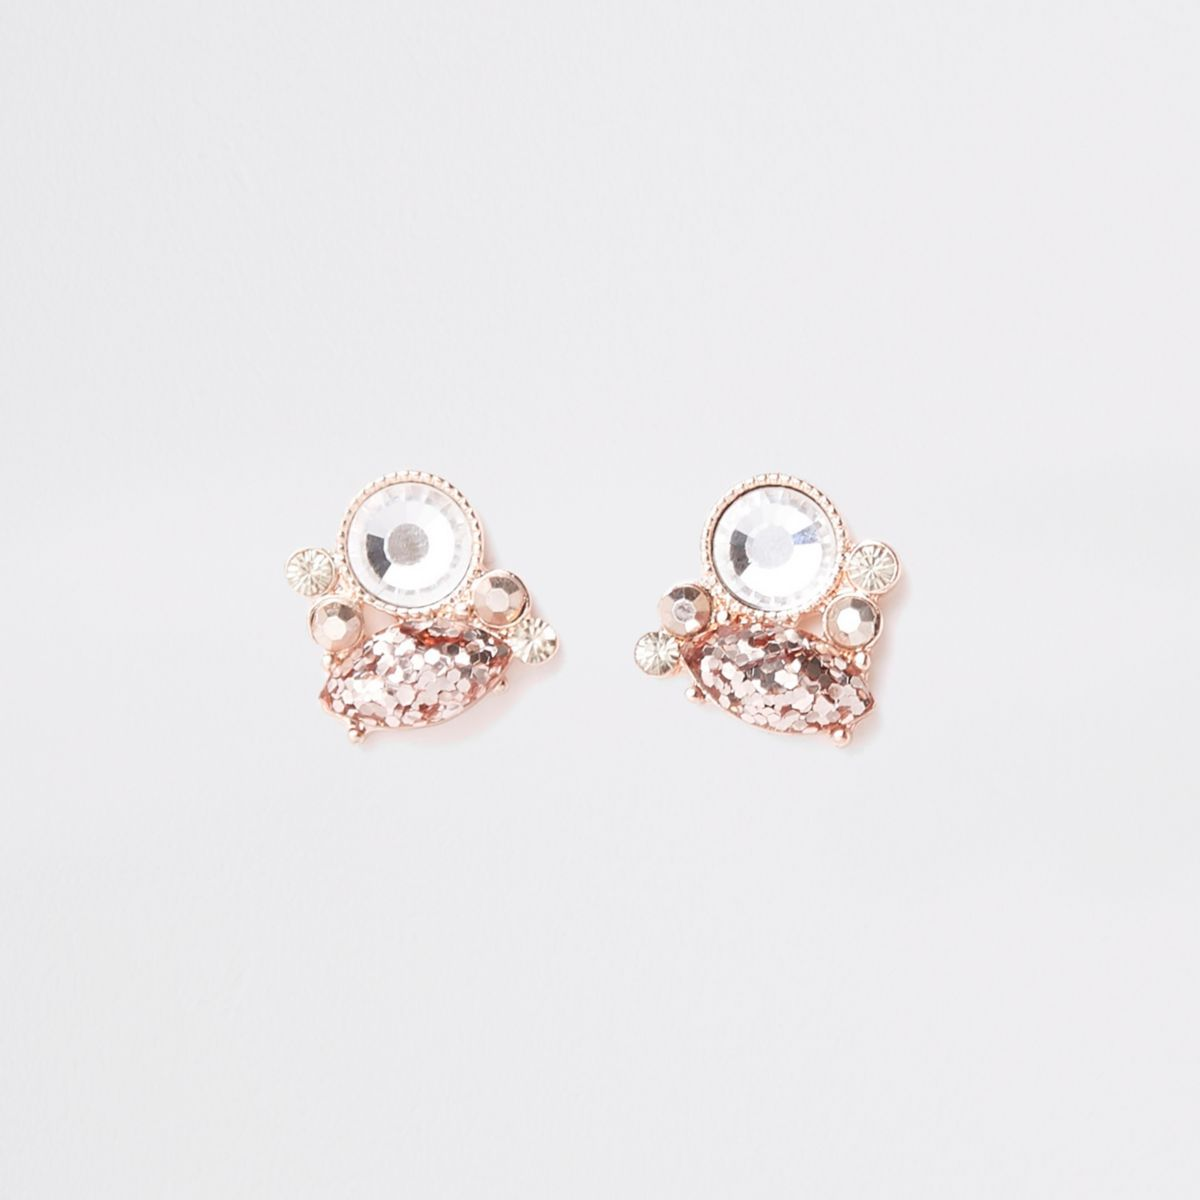 Rose gold tone rhinestone cluster stud earrings